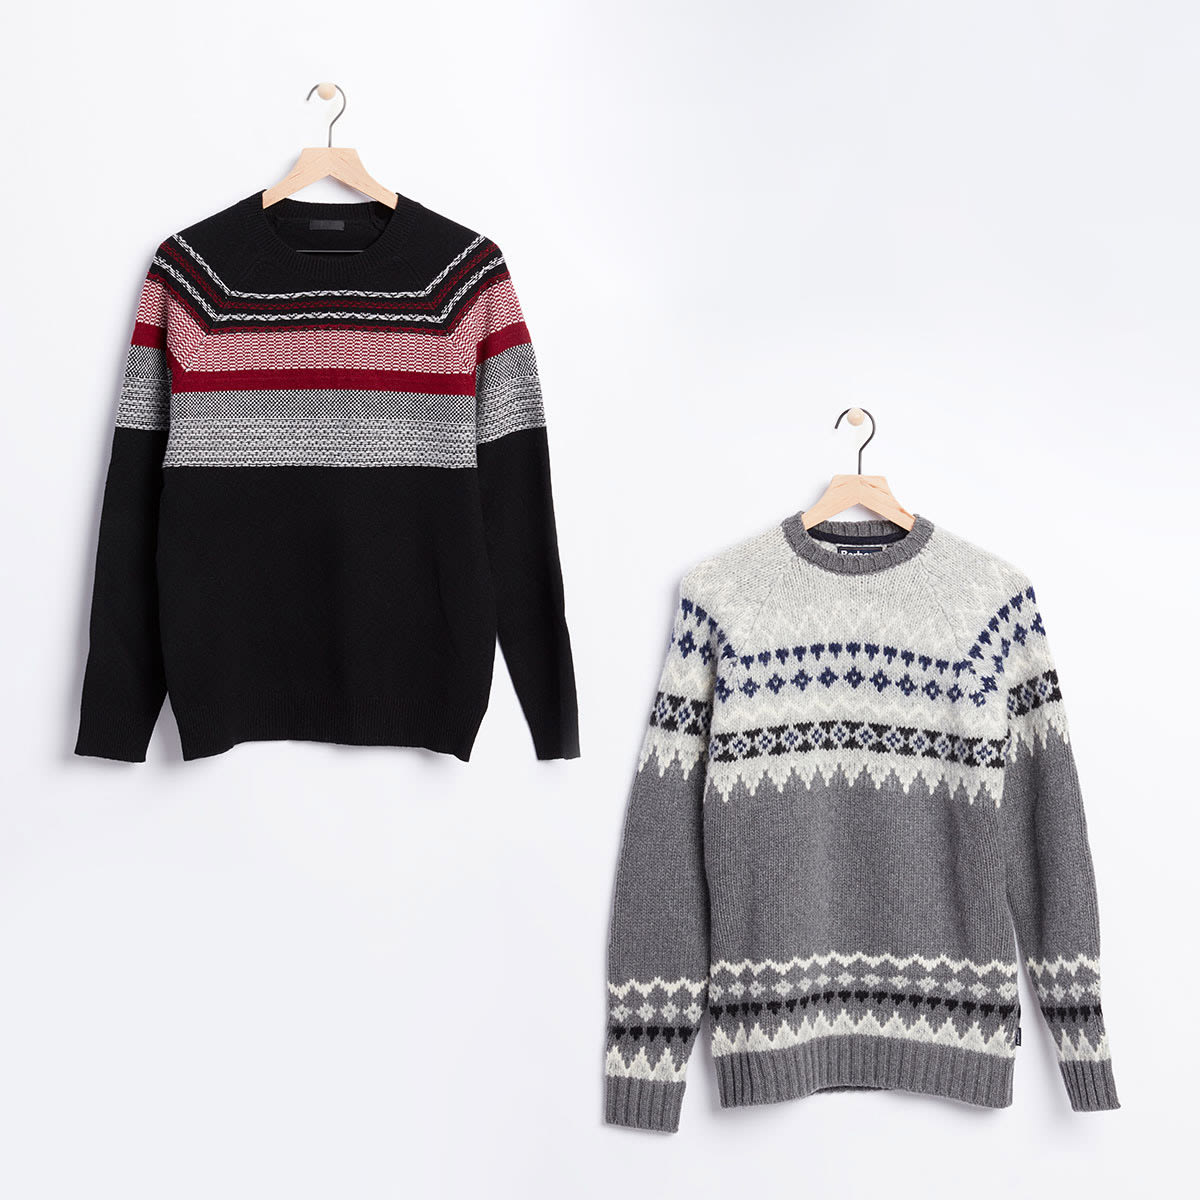 Classic sweaters